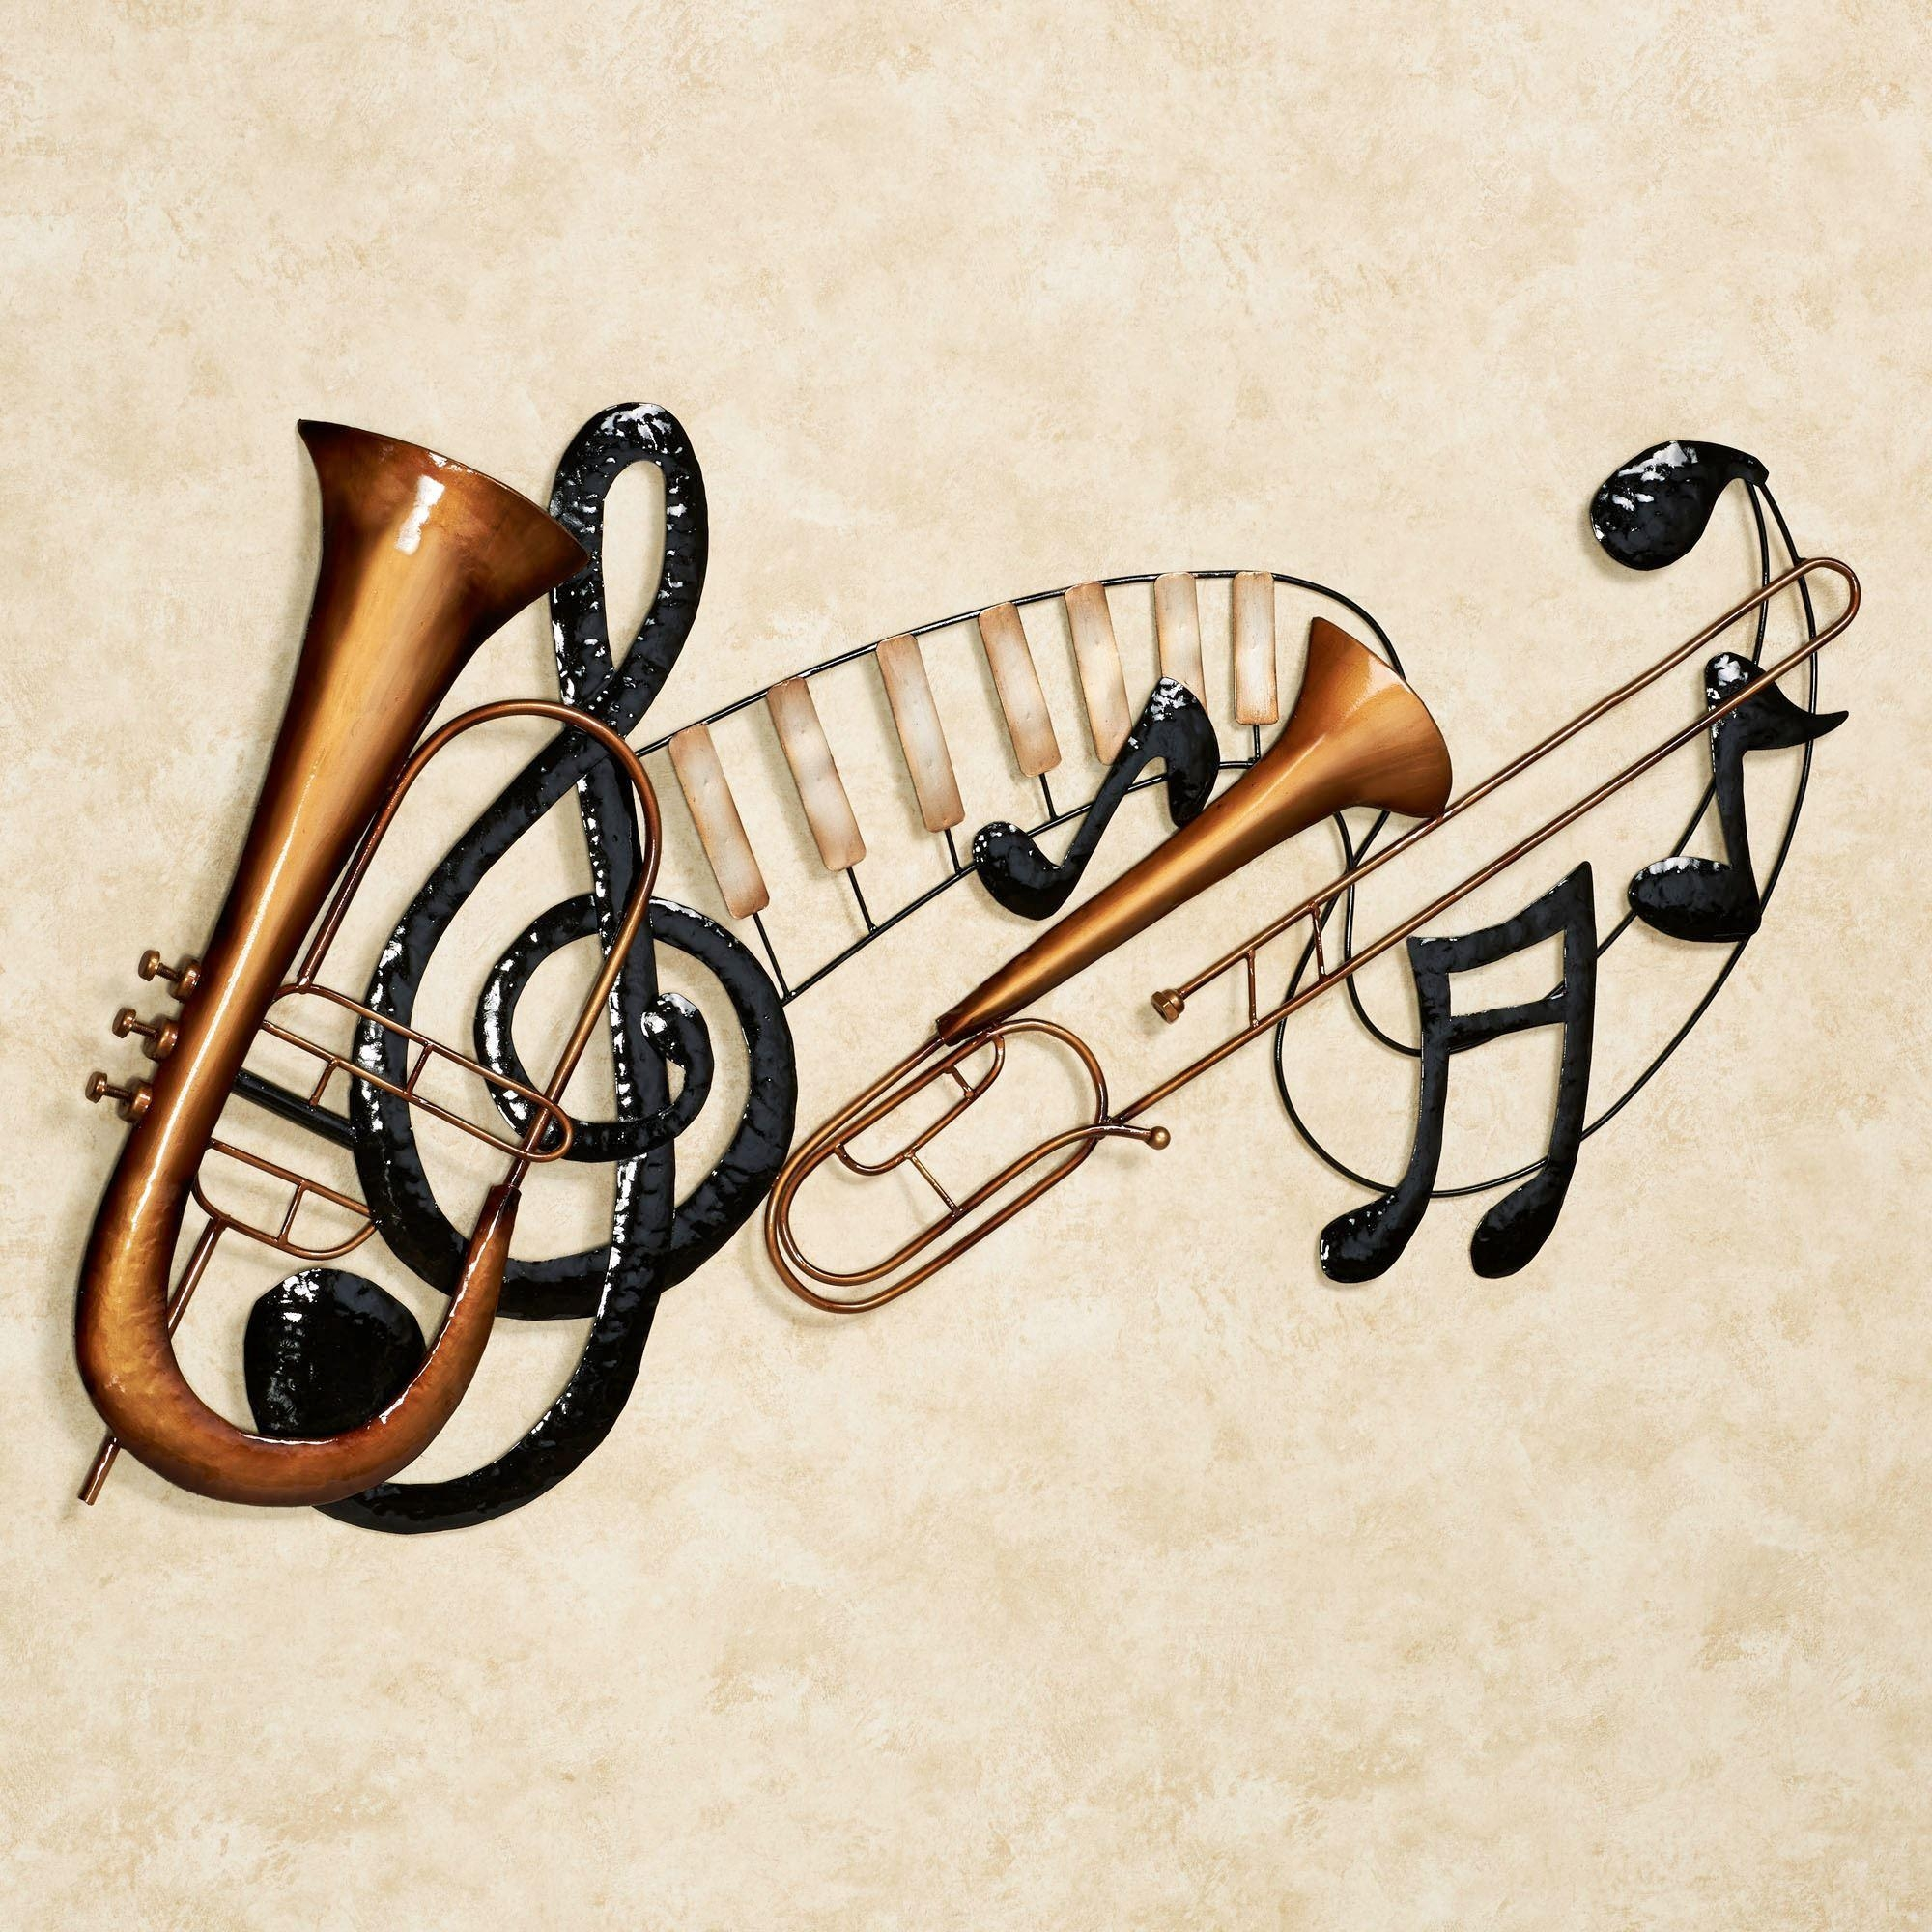 Musical Interlude Metal Wall Art Intended For Metal Music Wall Art (Image 13 of 20)